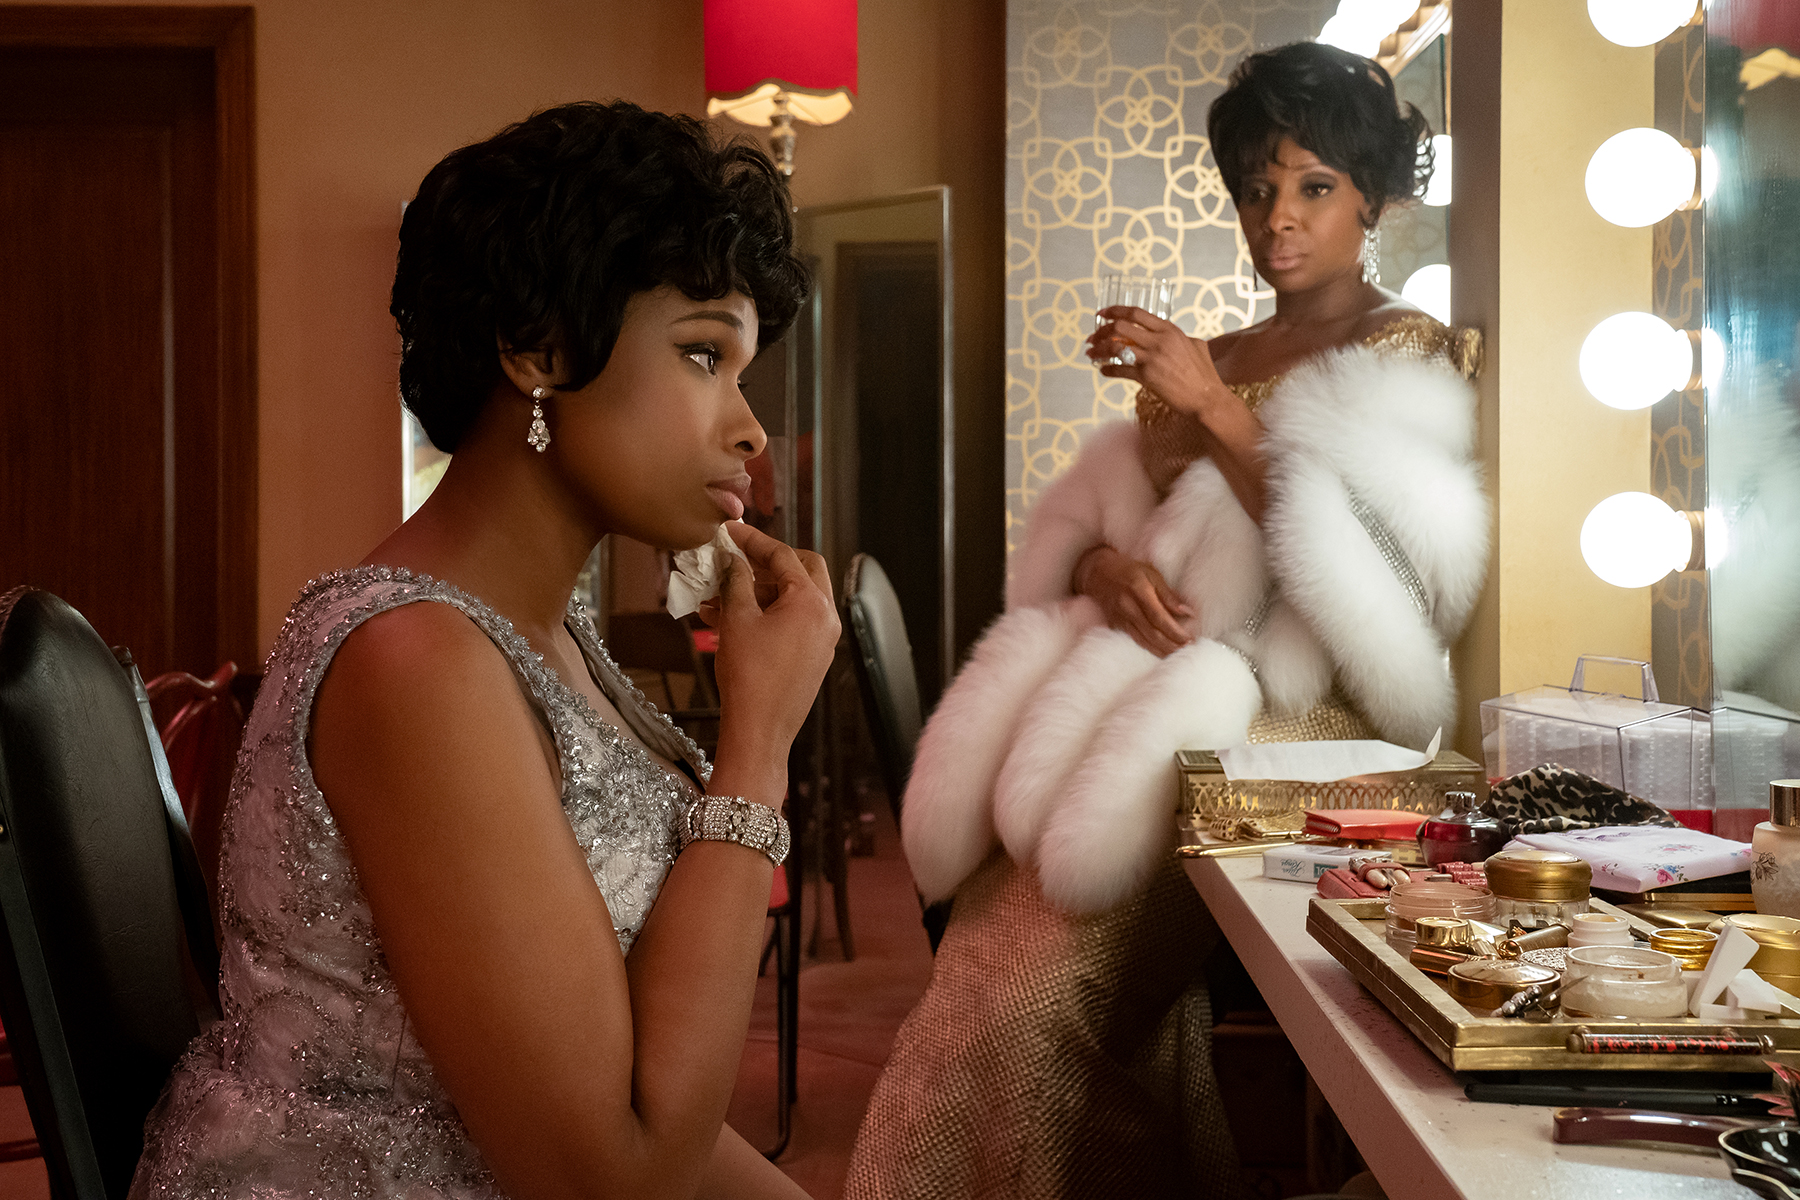 R_09165_RCJennifer Hudson stars as Aretha Franklin and Mary J. Blige as Dinah Washington inRESPECT A Metro Goldwyn Mayer Pictures filmPhoto credit: Quantrell D. Colbert